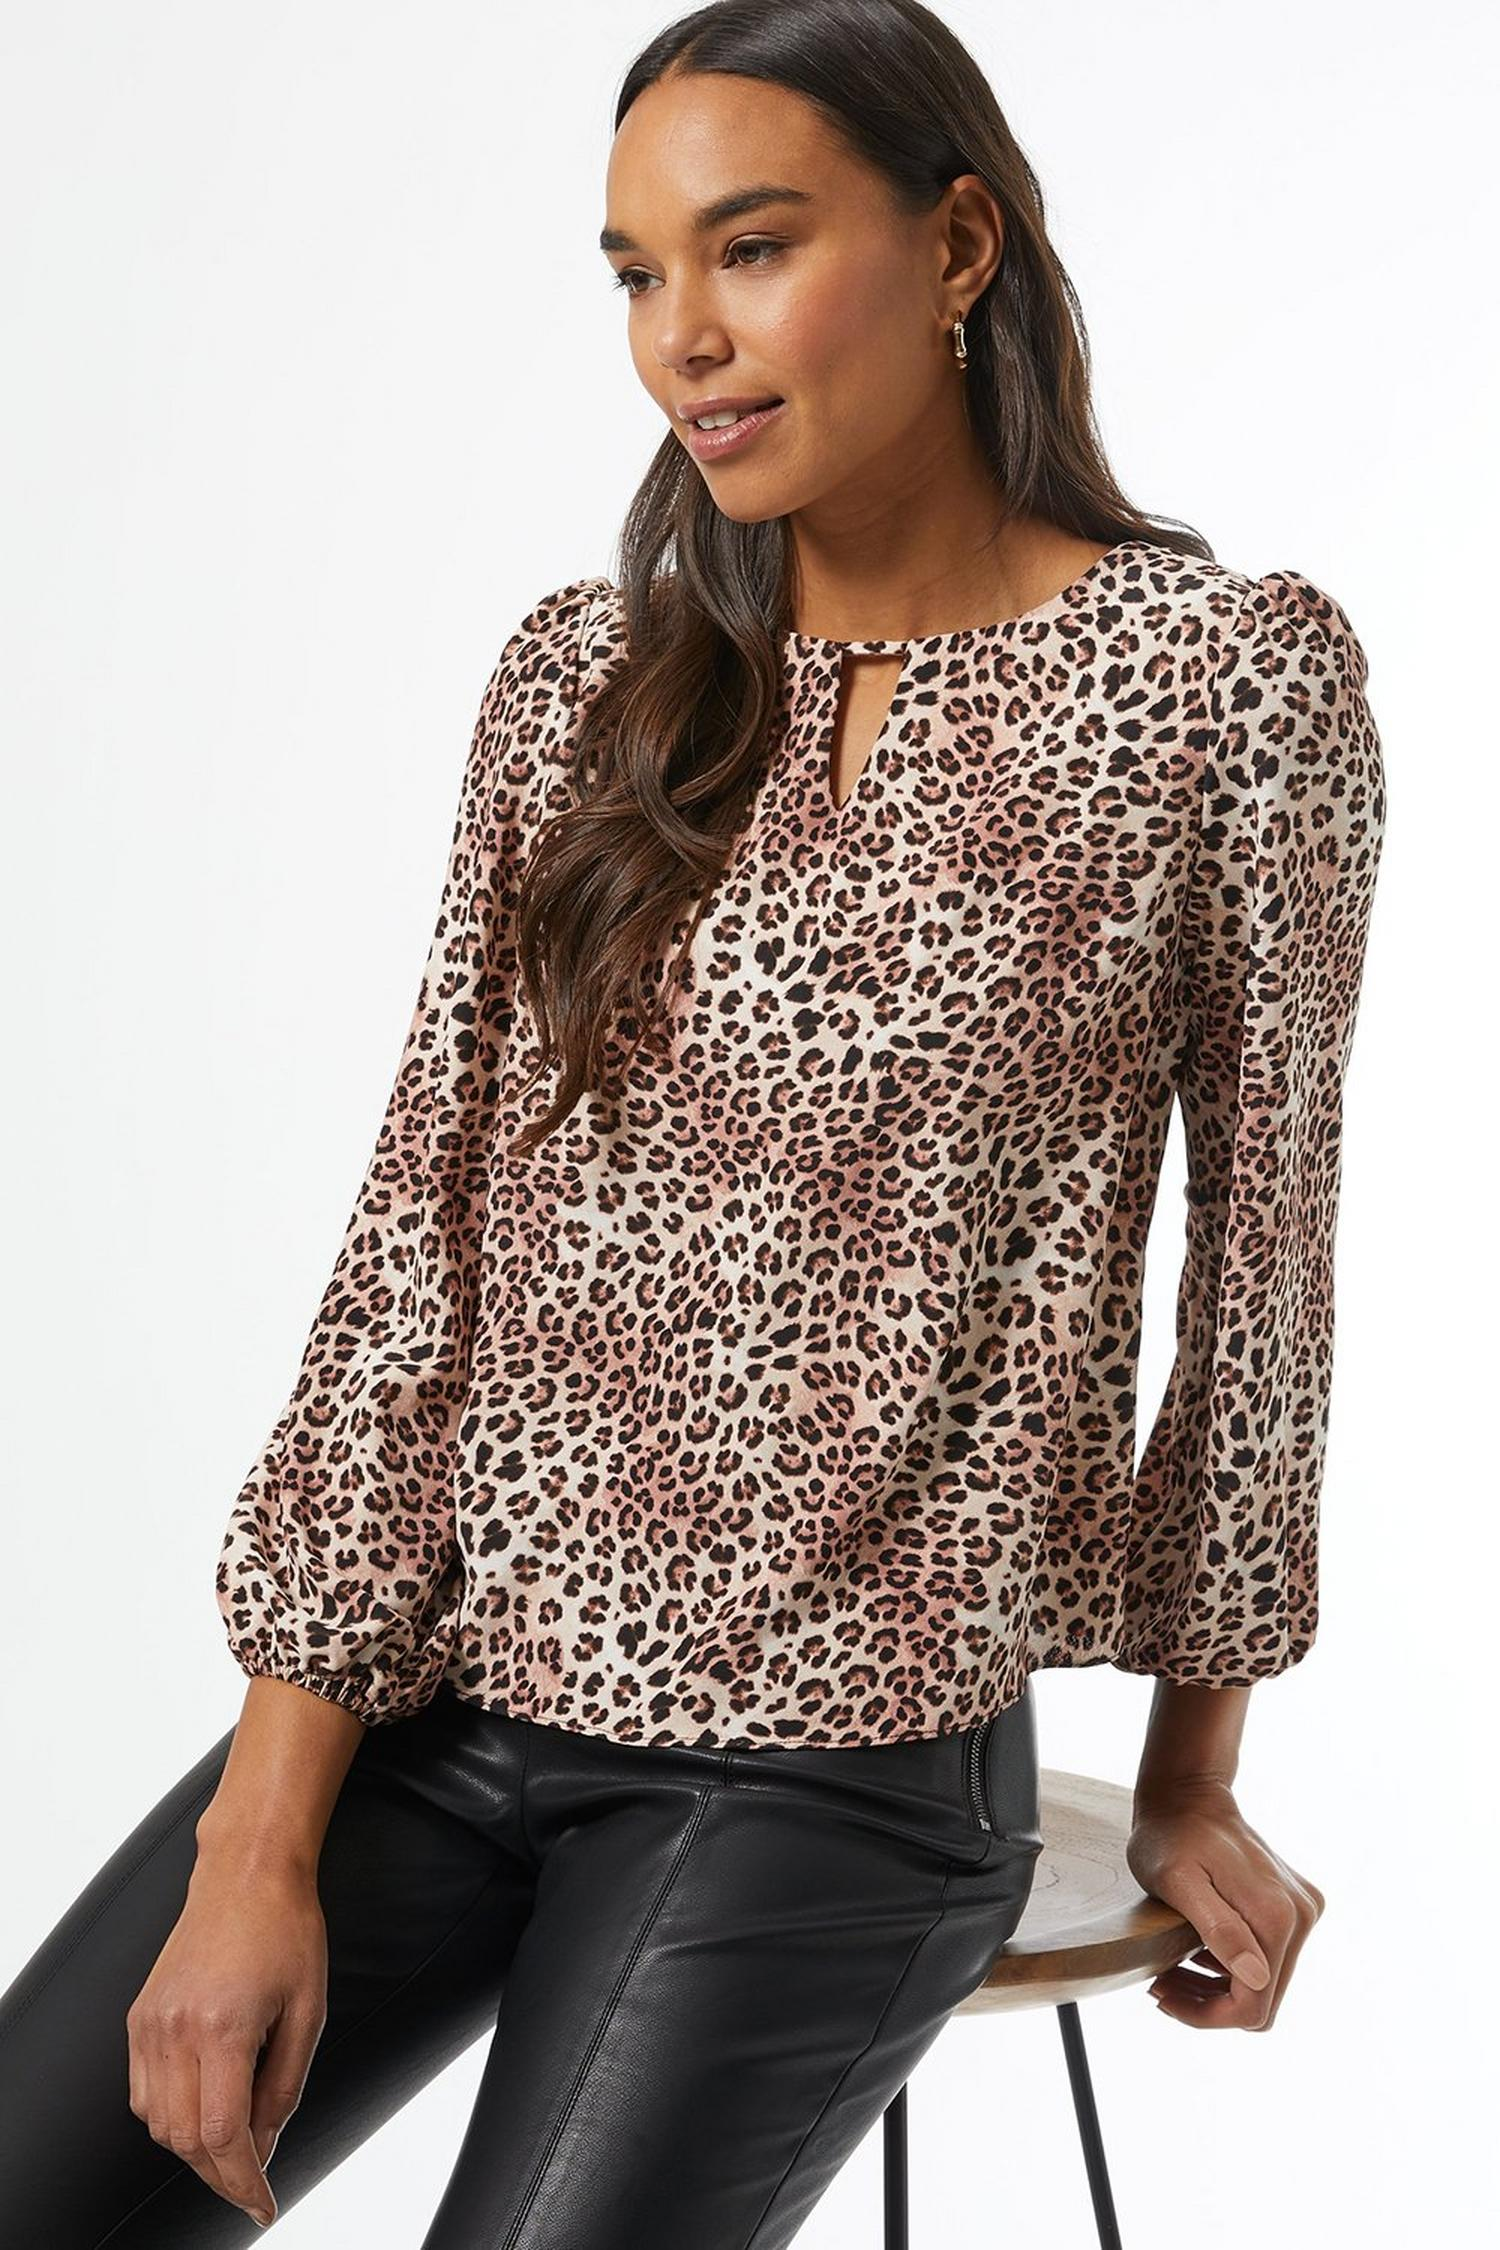 123 White Leopard Print Blouse image number 4